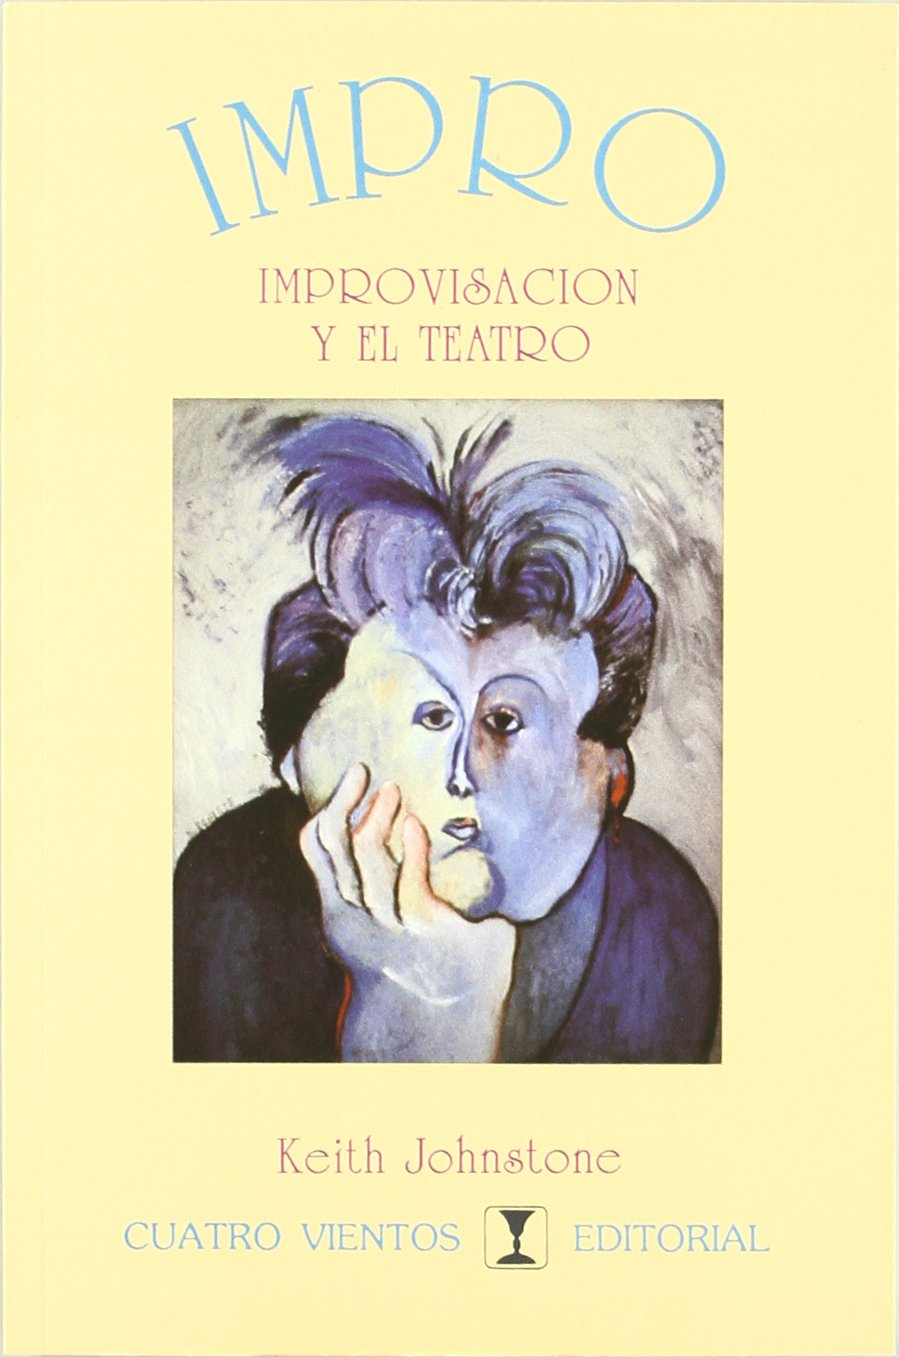 Portada Impro, Keith Johnstone